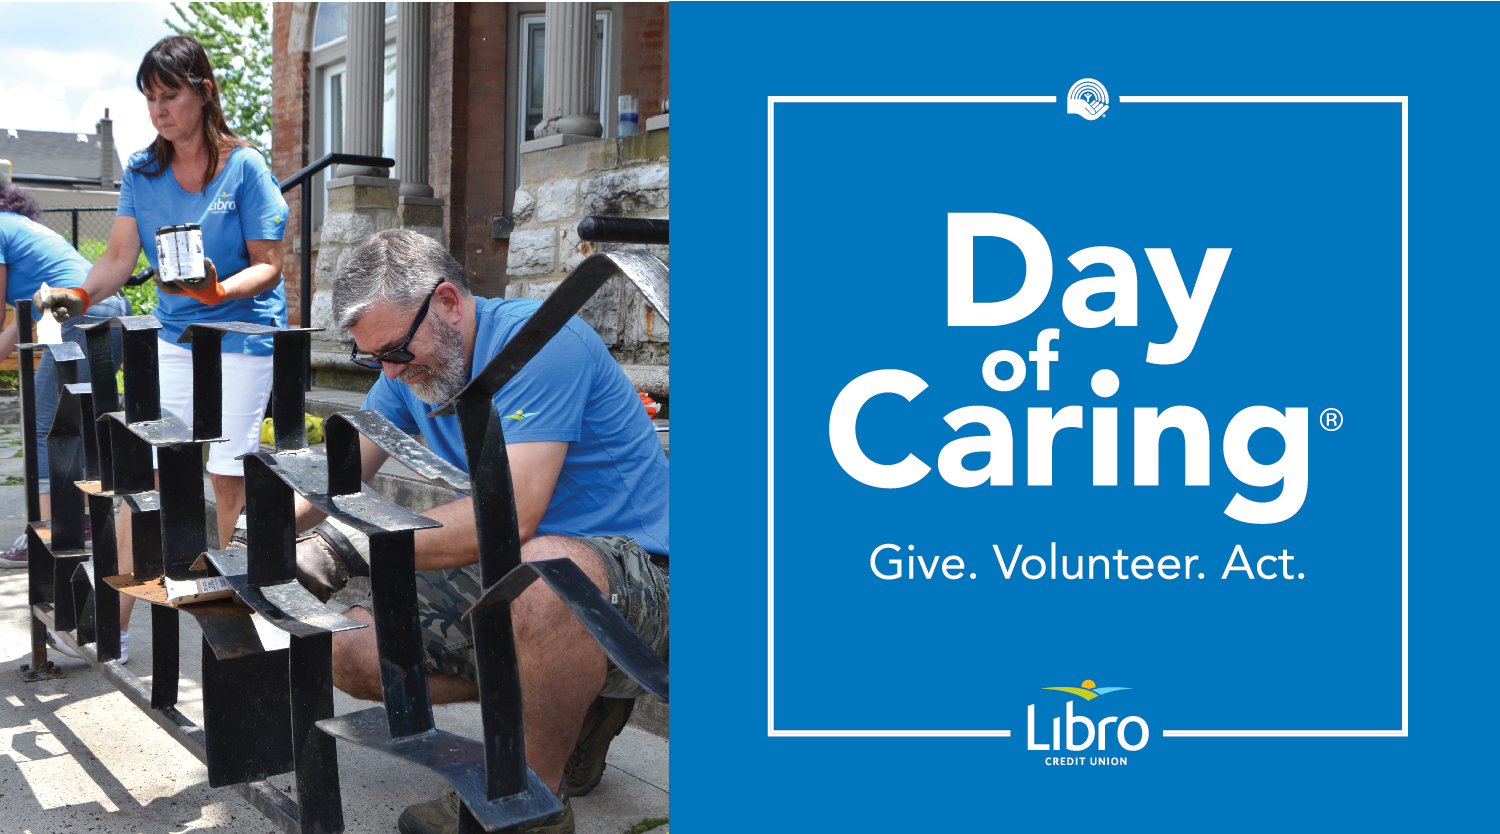 Libro Image - Day of Caring